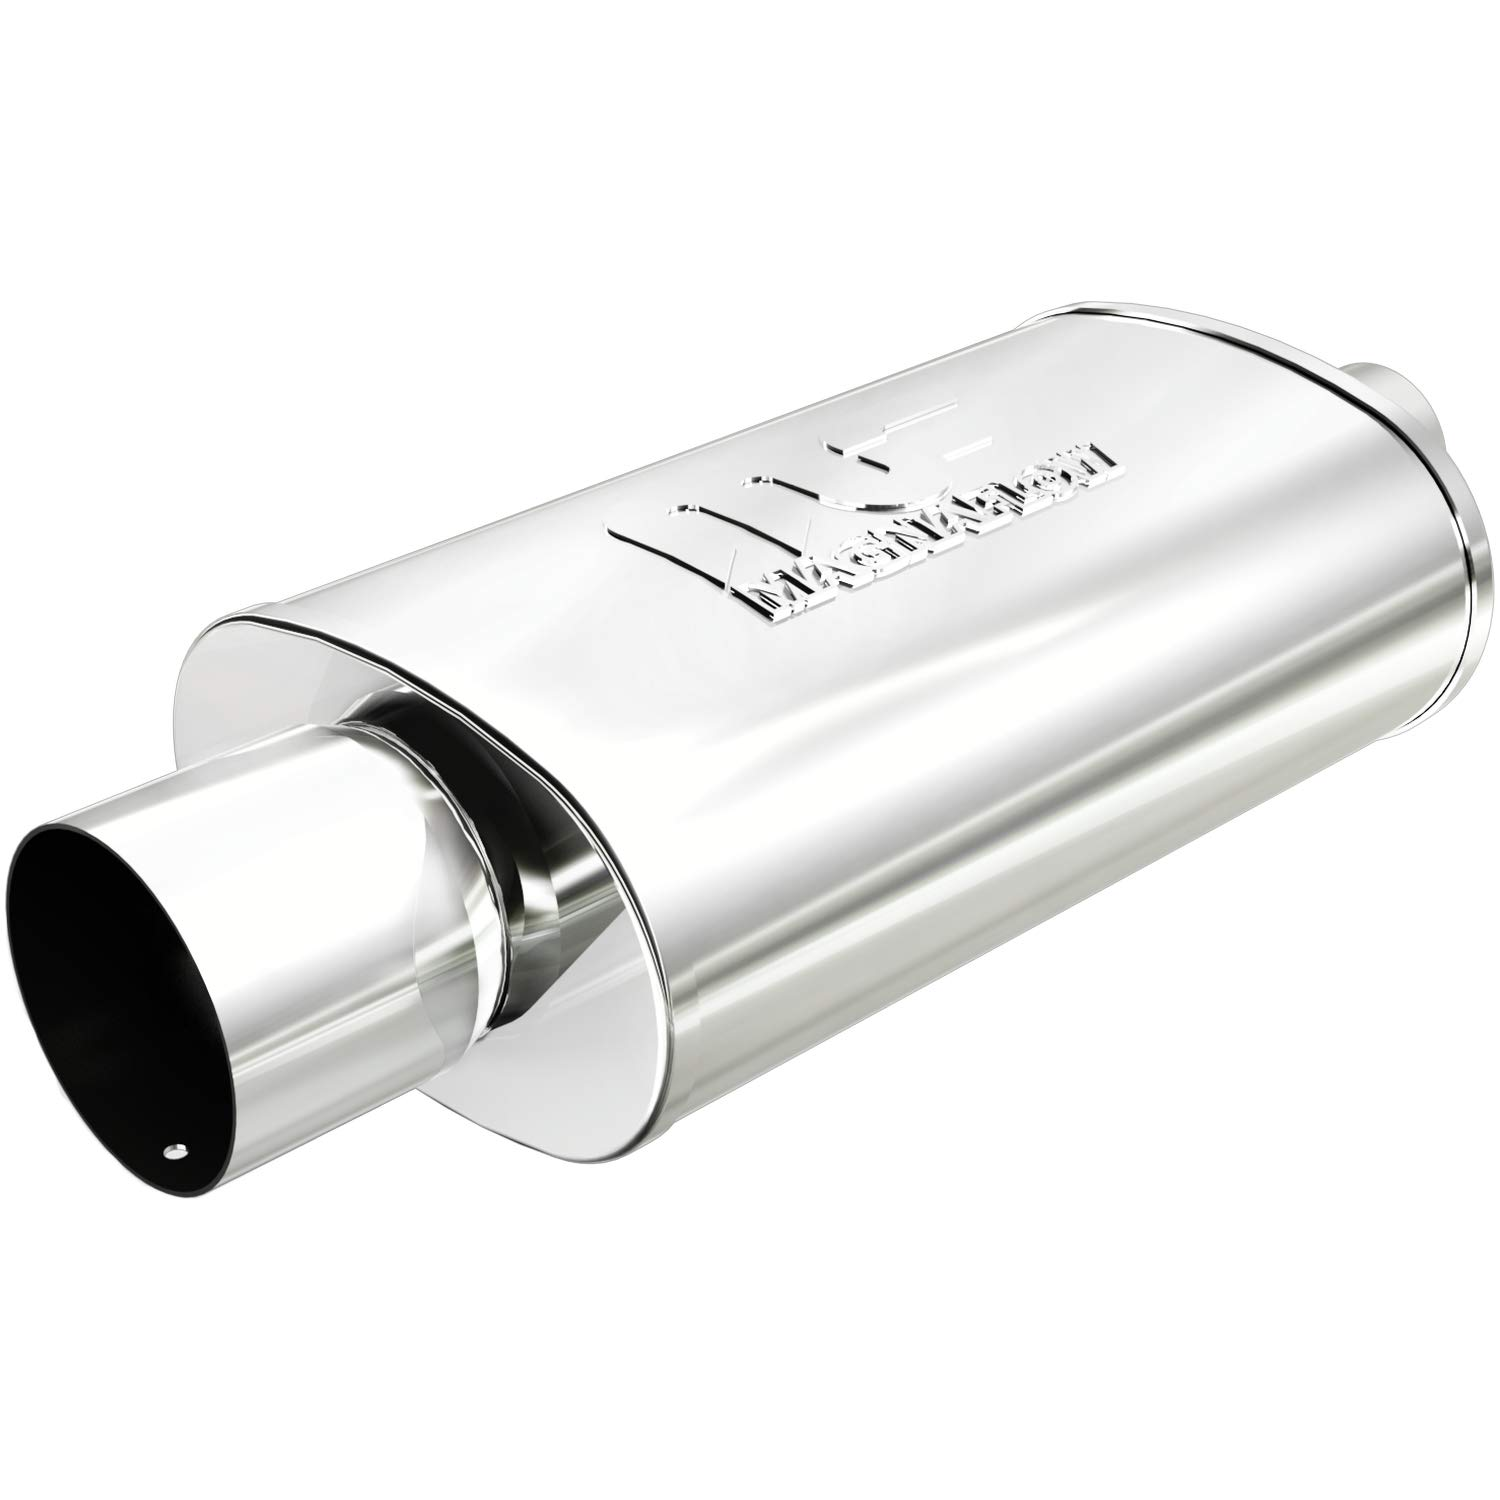 Magnaflow 14818 Street Series Polished Stainless Steel Oval Muffler with Tip